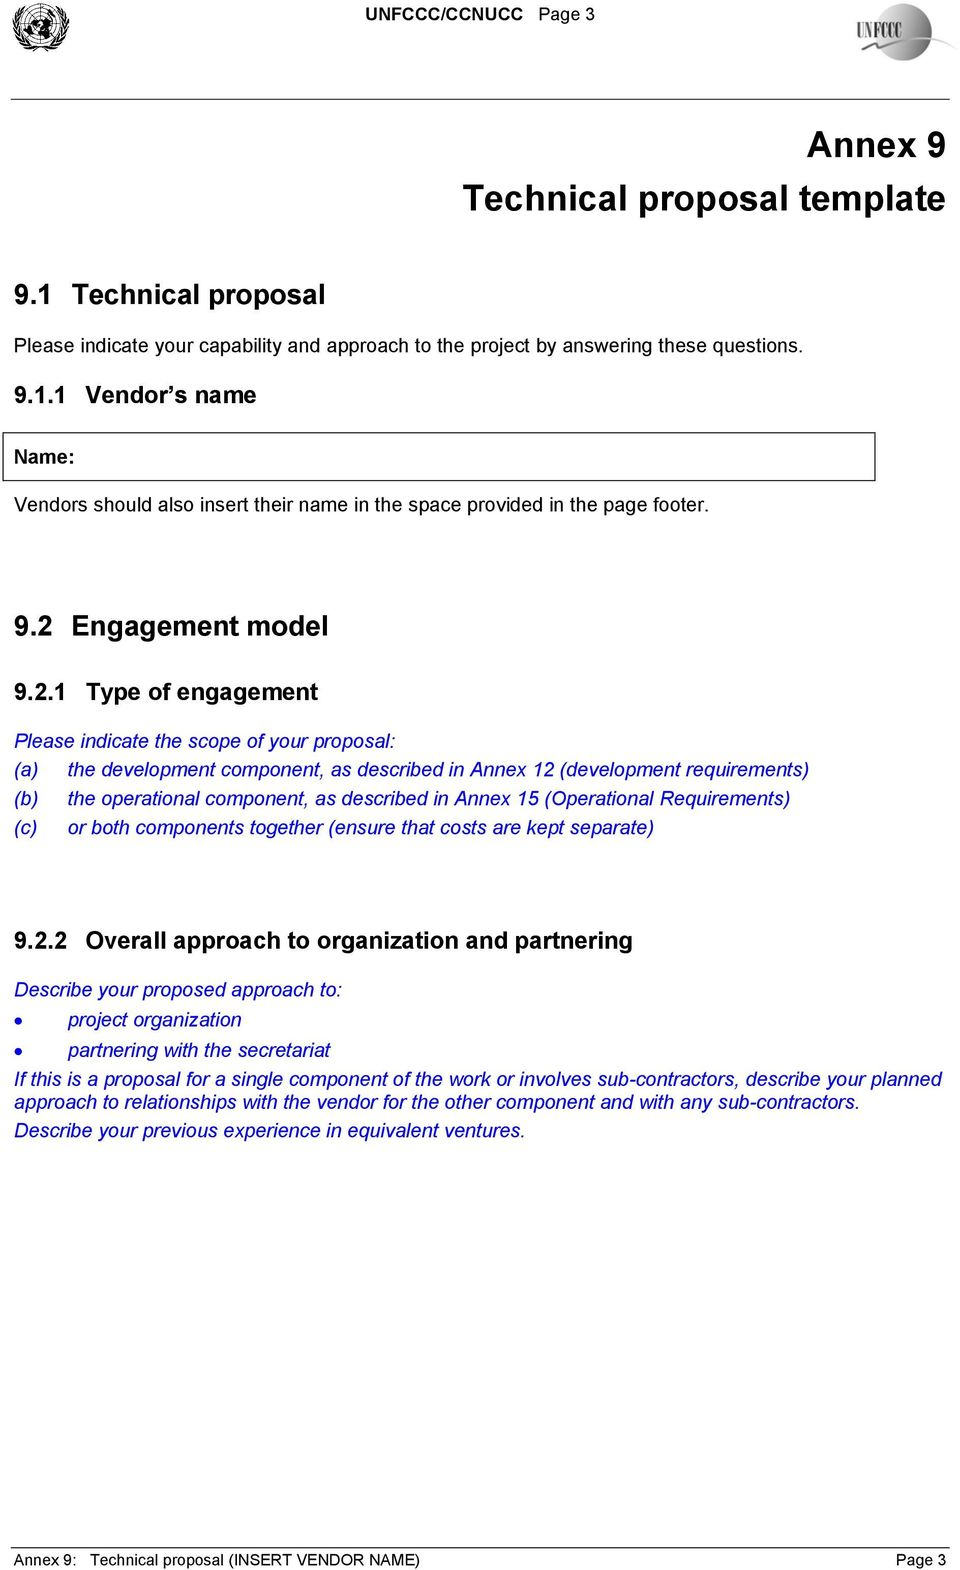 Annex 9 Technical Proposal Template Table Of Contents Pdf